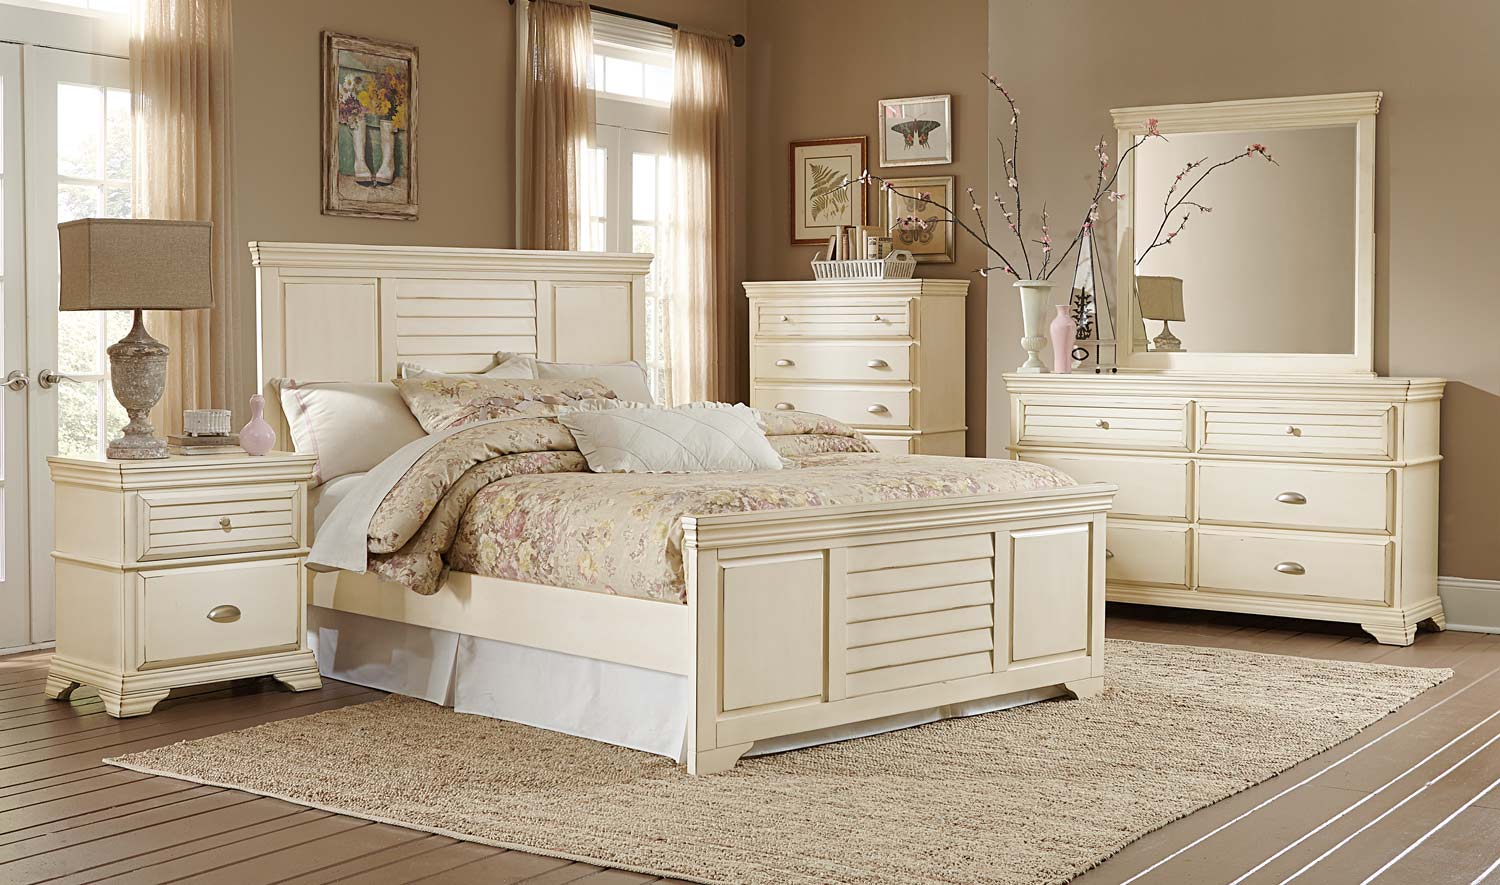 Homelegance Laurinda Bedroom Set Antique White 1846